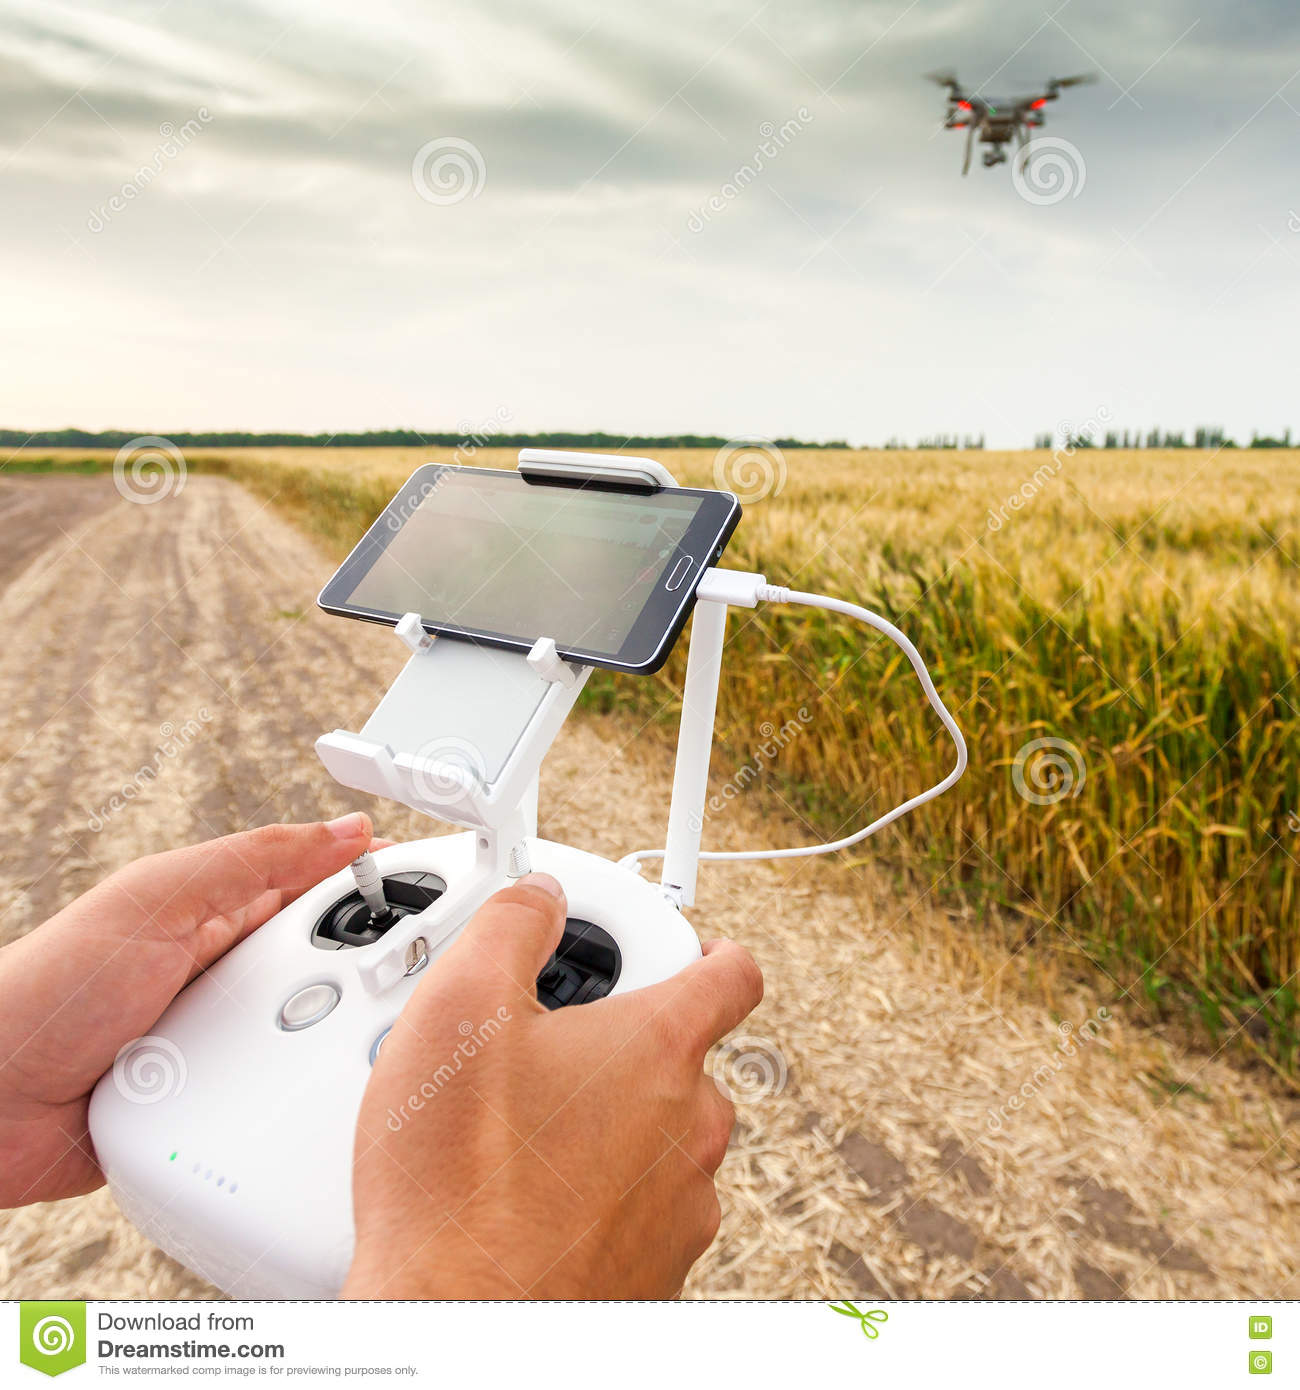 Unmanned copter. Man controls quadrocopter flight.